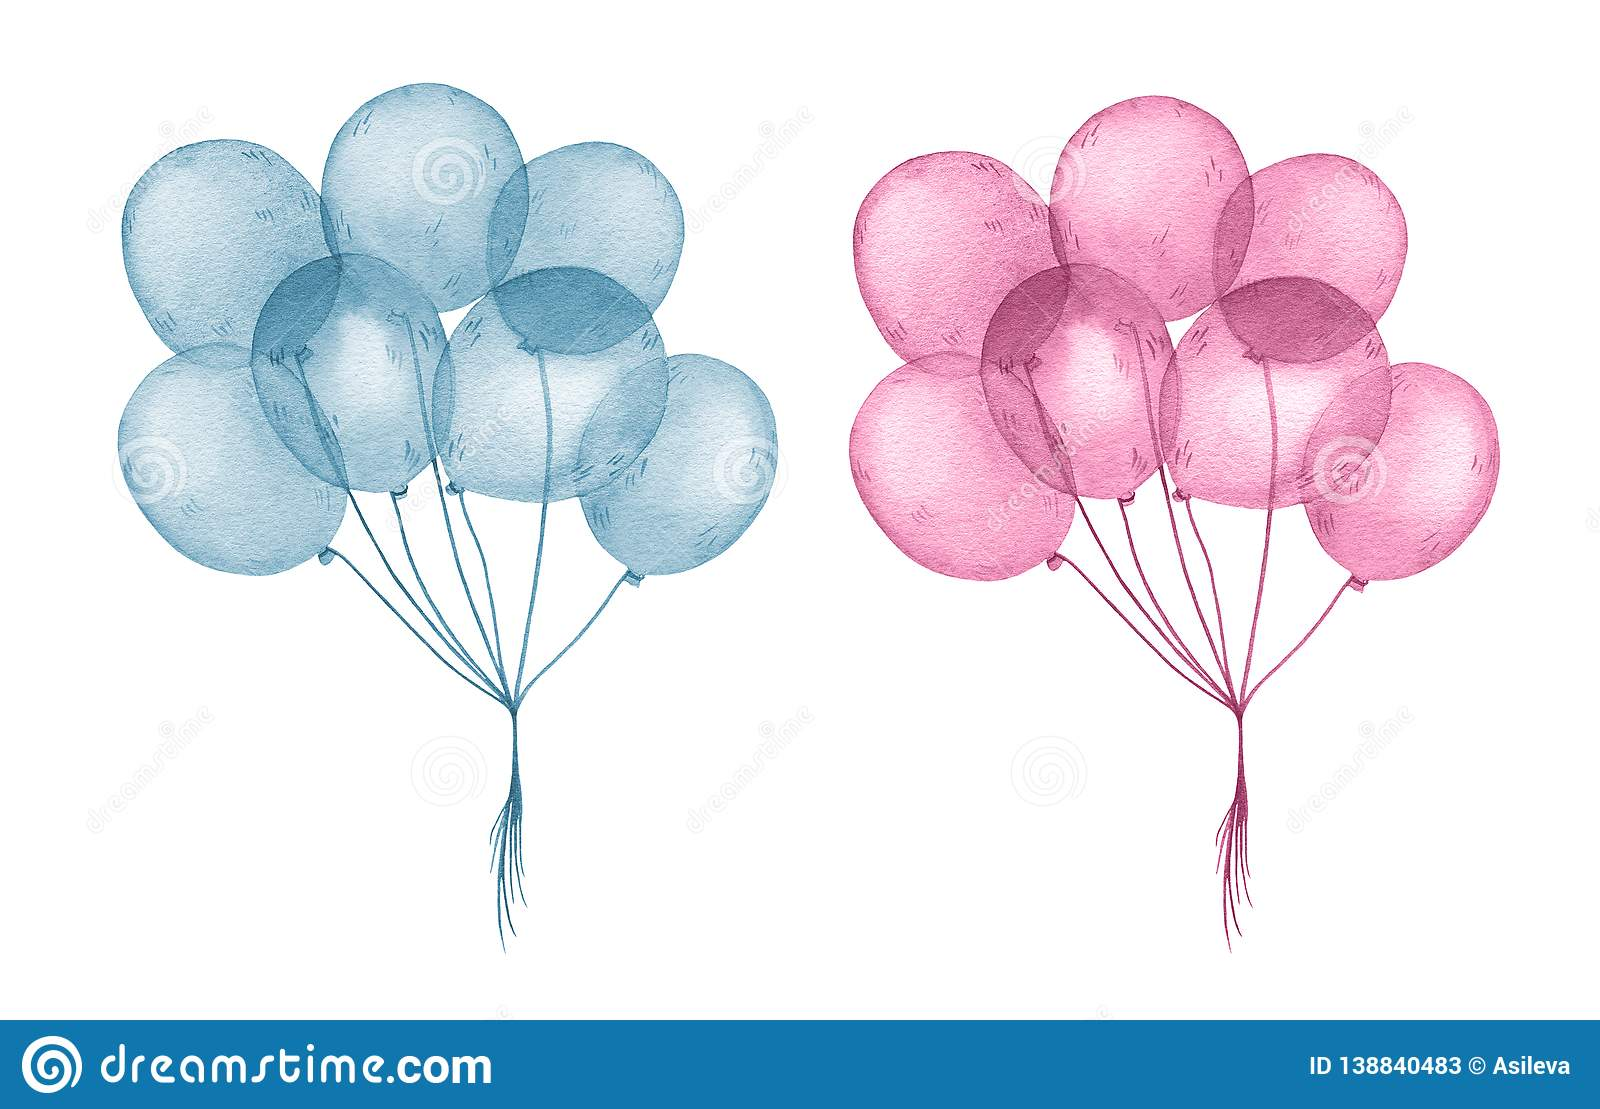 Watercolor Blue And Pink Balloons For Happy Birthday Stock